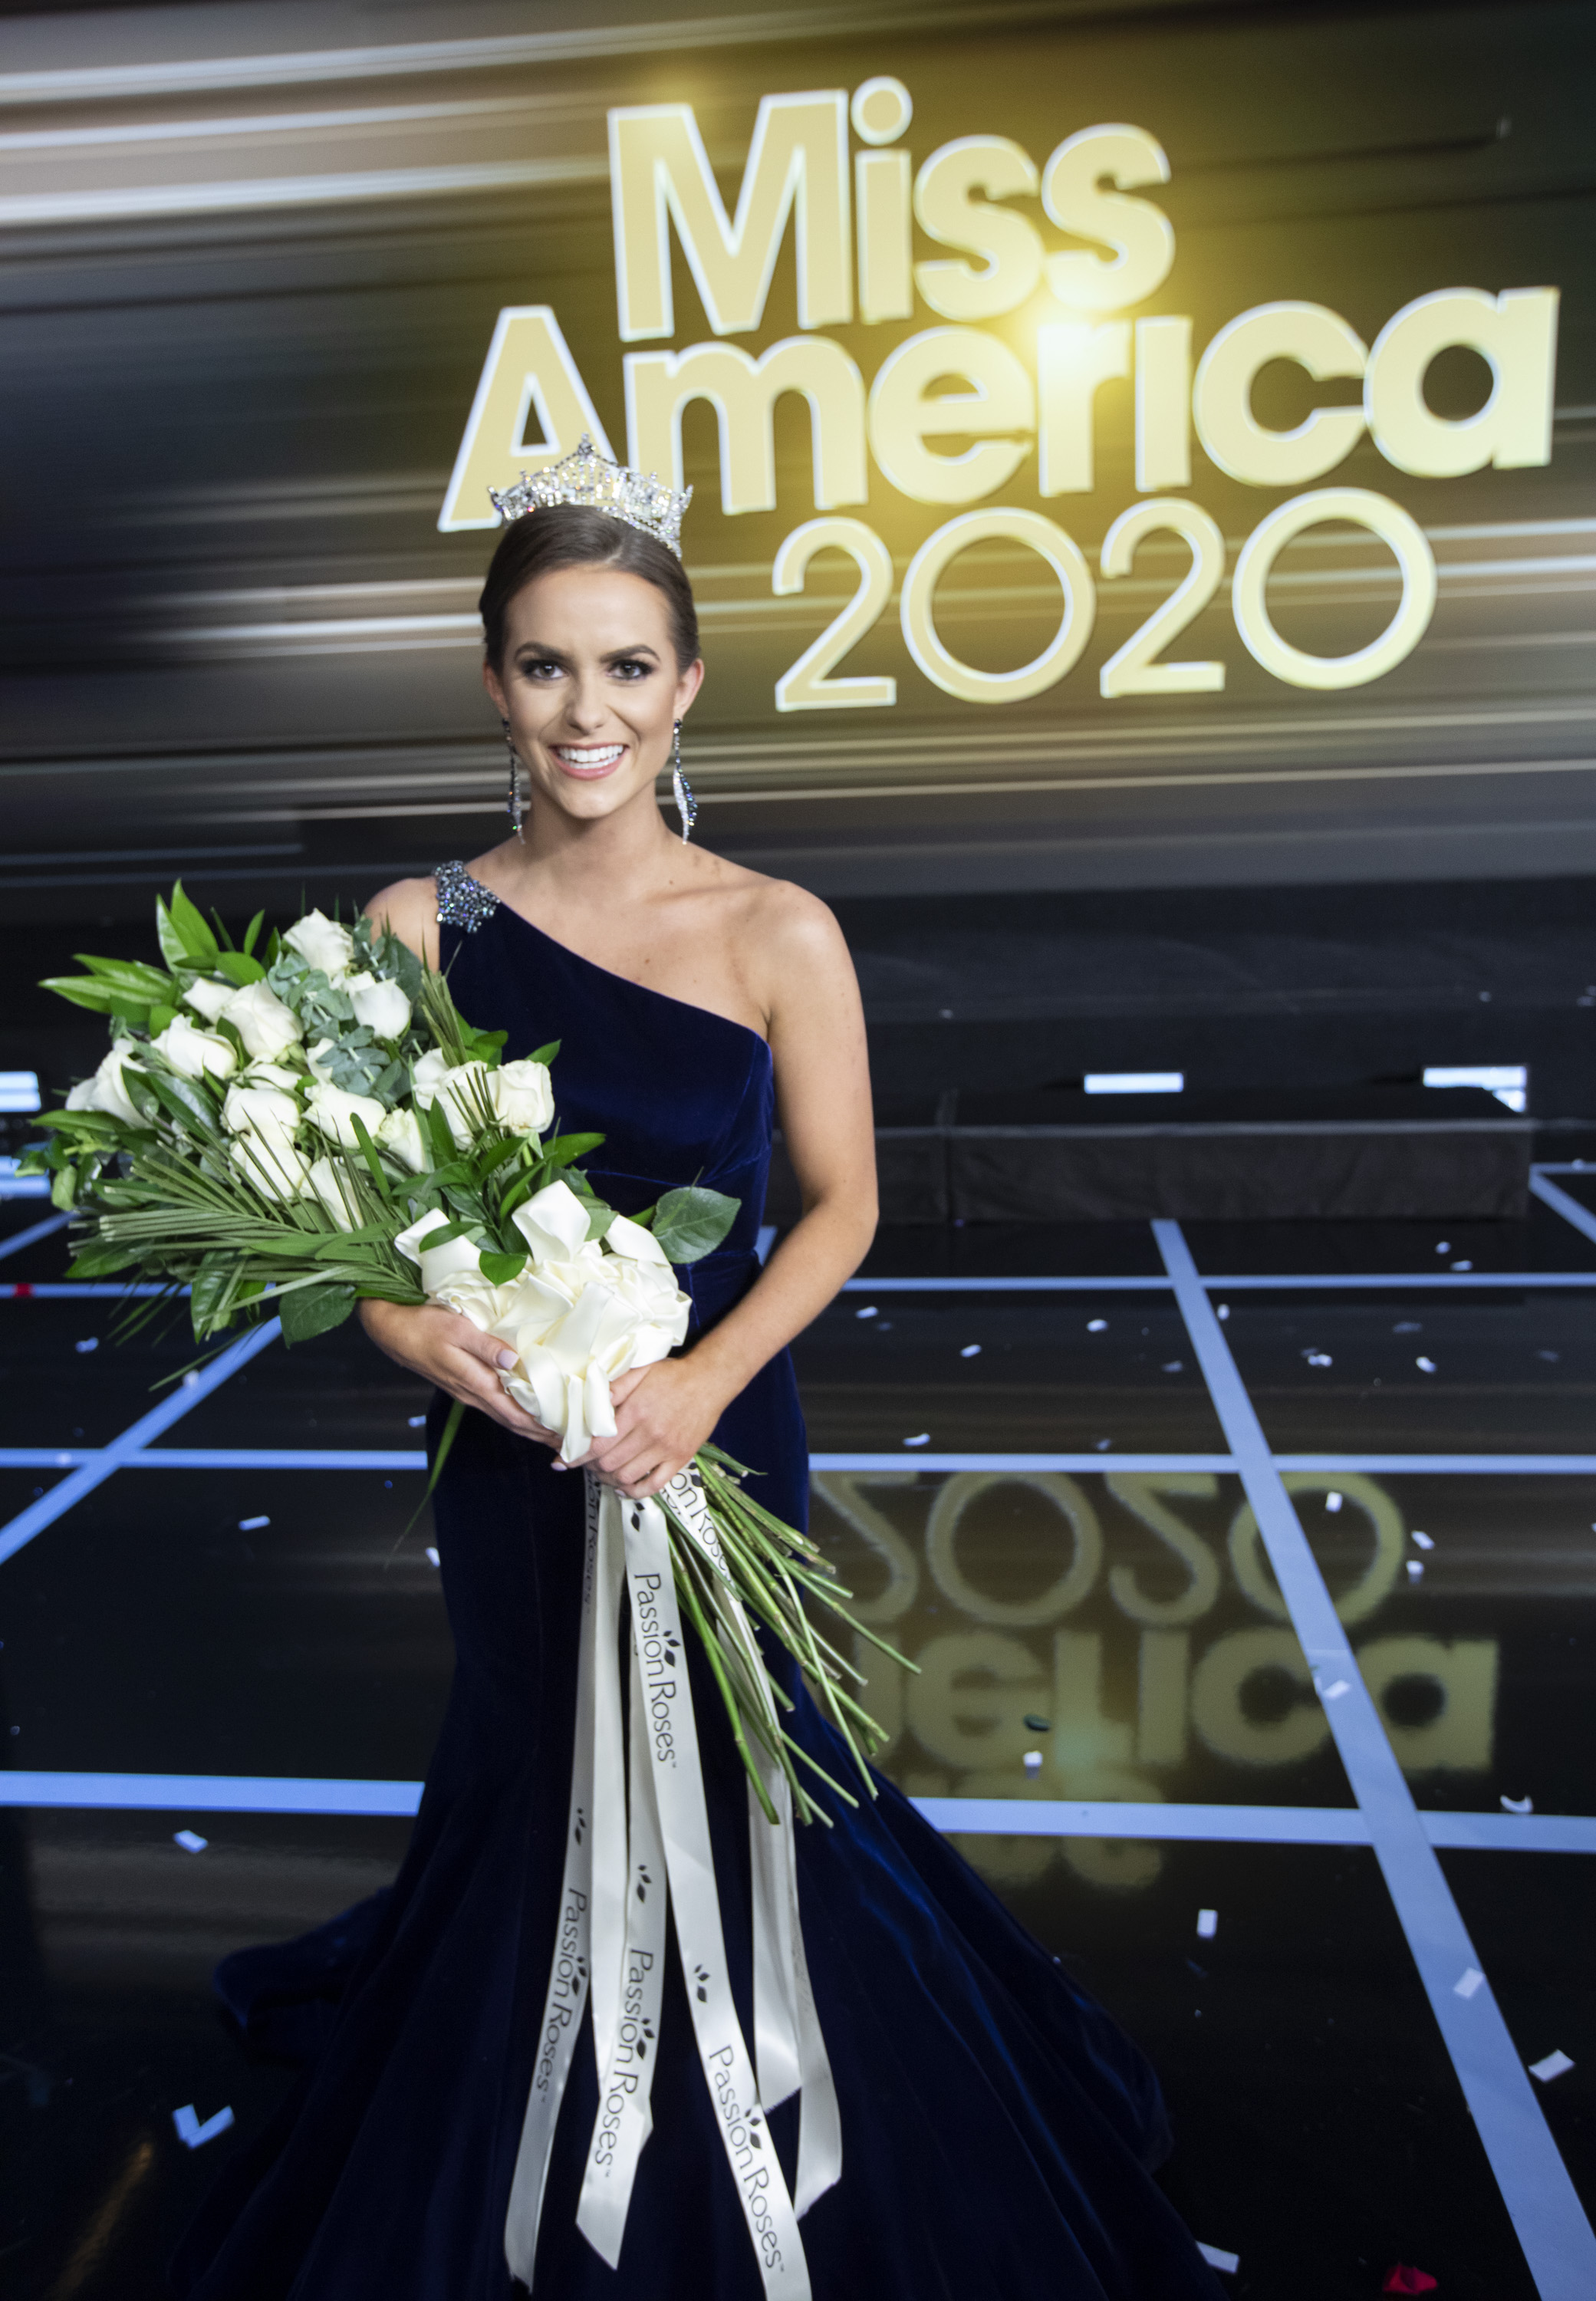 Miss America to Speak at the 2020 National Conference and Trade Show of the National Drug and Alcohol Screening Association (NDASA)